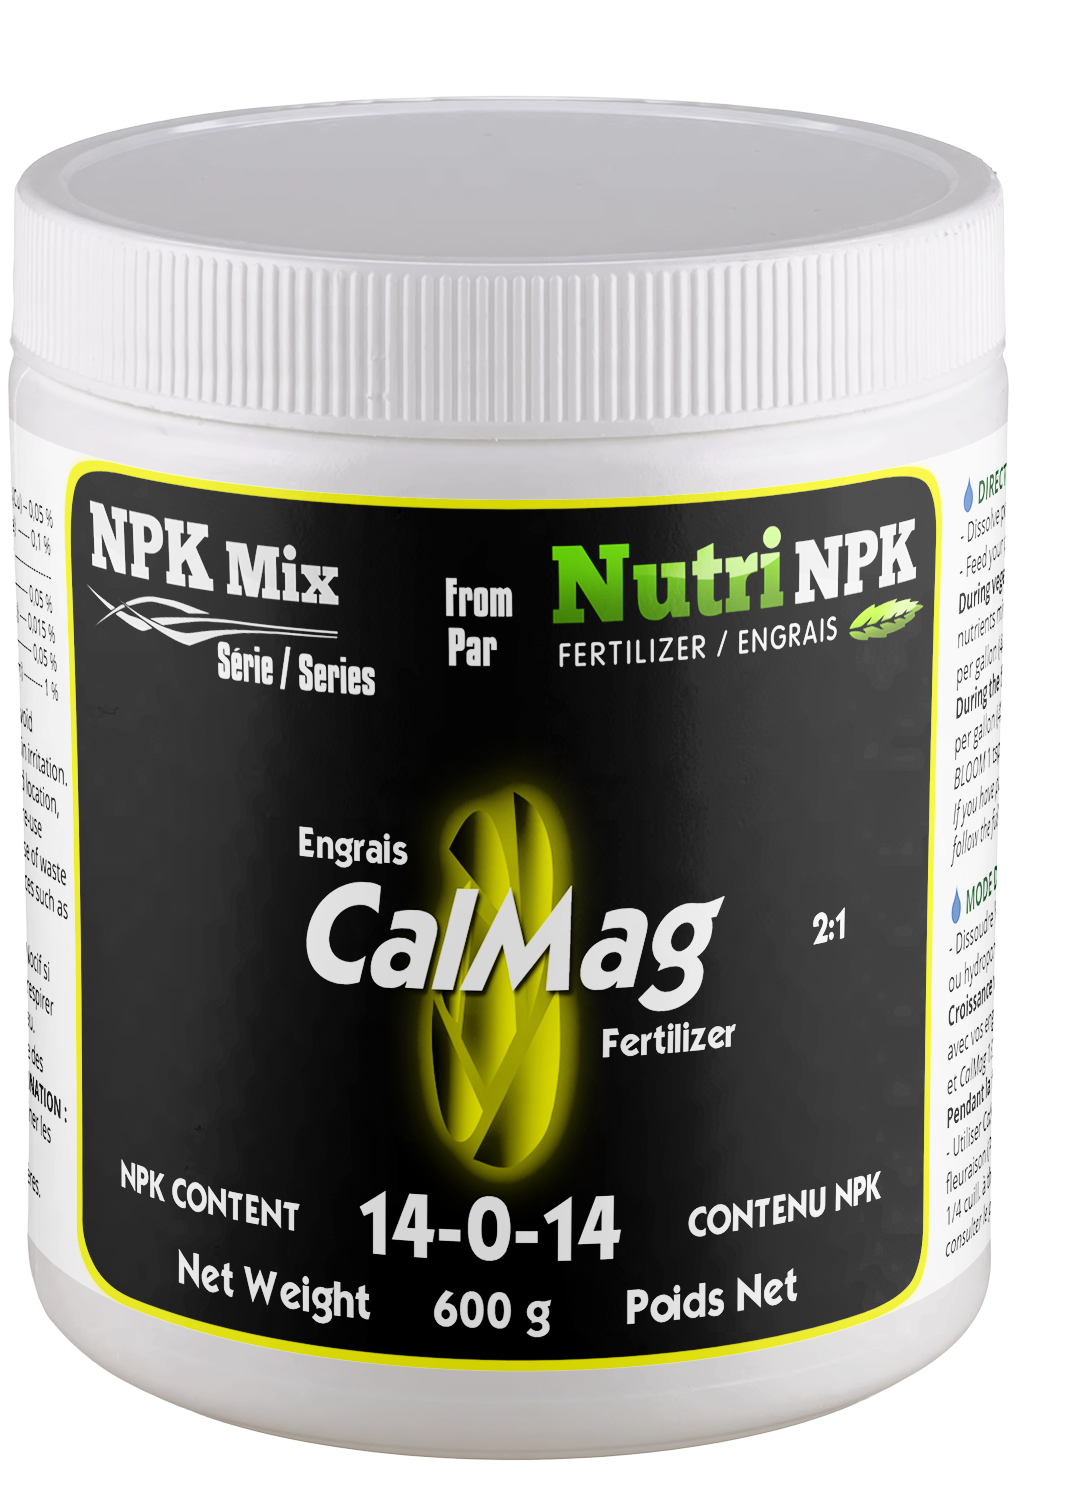 CALMAG Cannabis Fertilizer - NPK Mix by NutriNPK